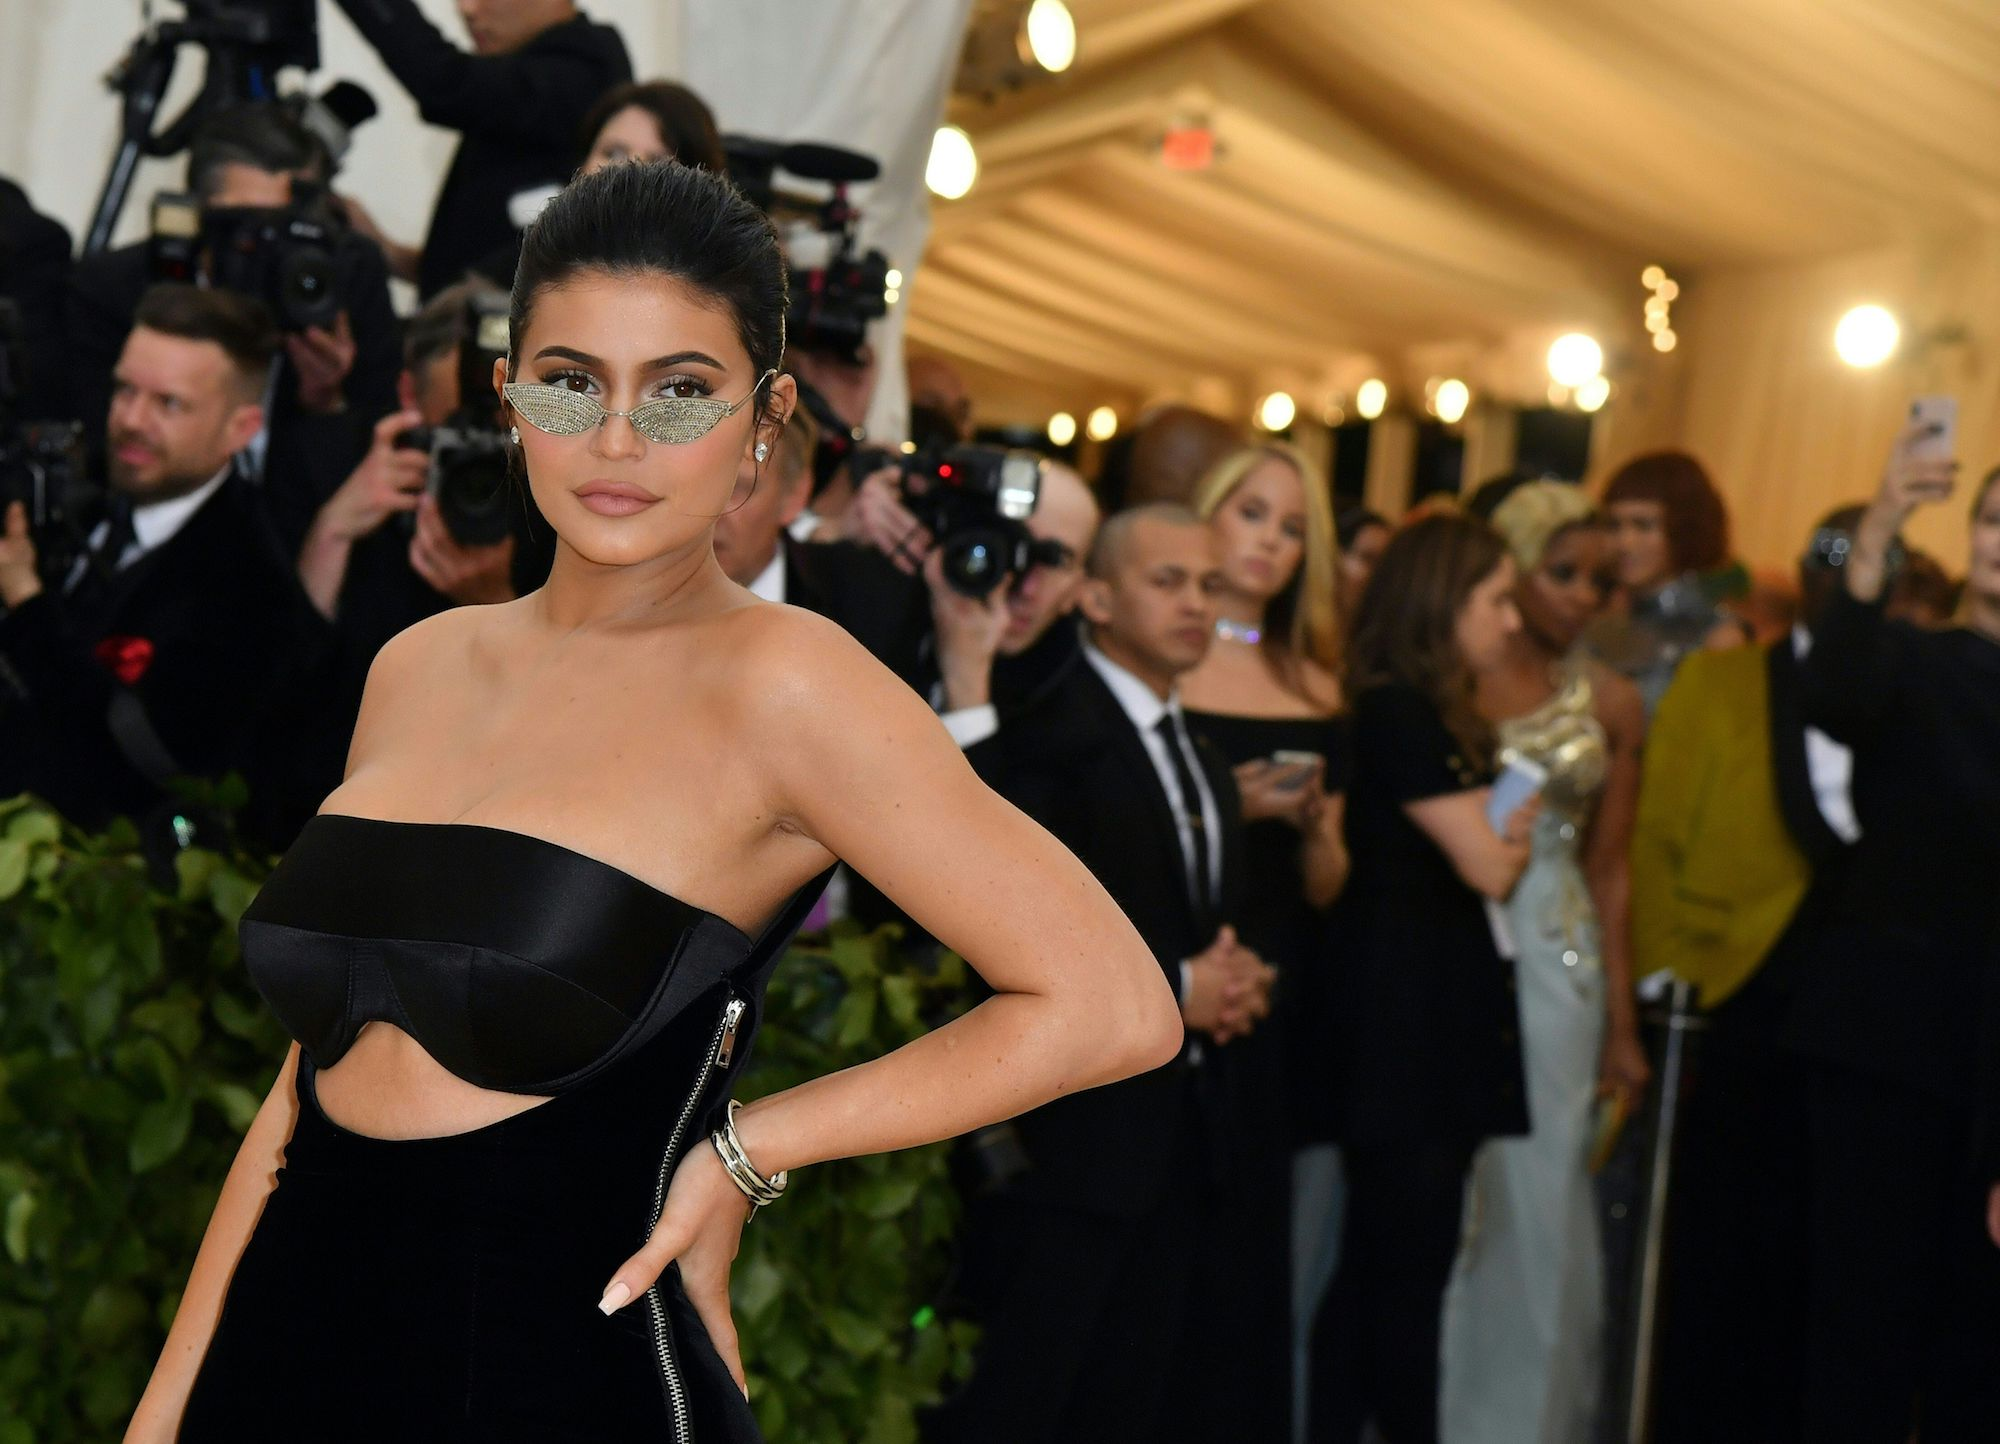 Kylie Jenner Was Giving Little Mermaid Vibes at the Met Gala